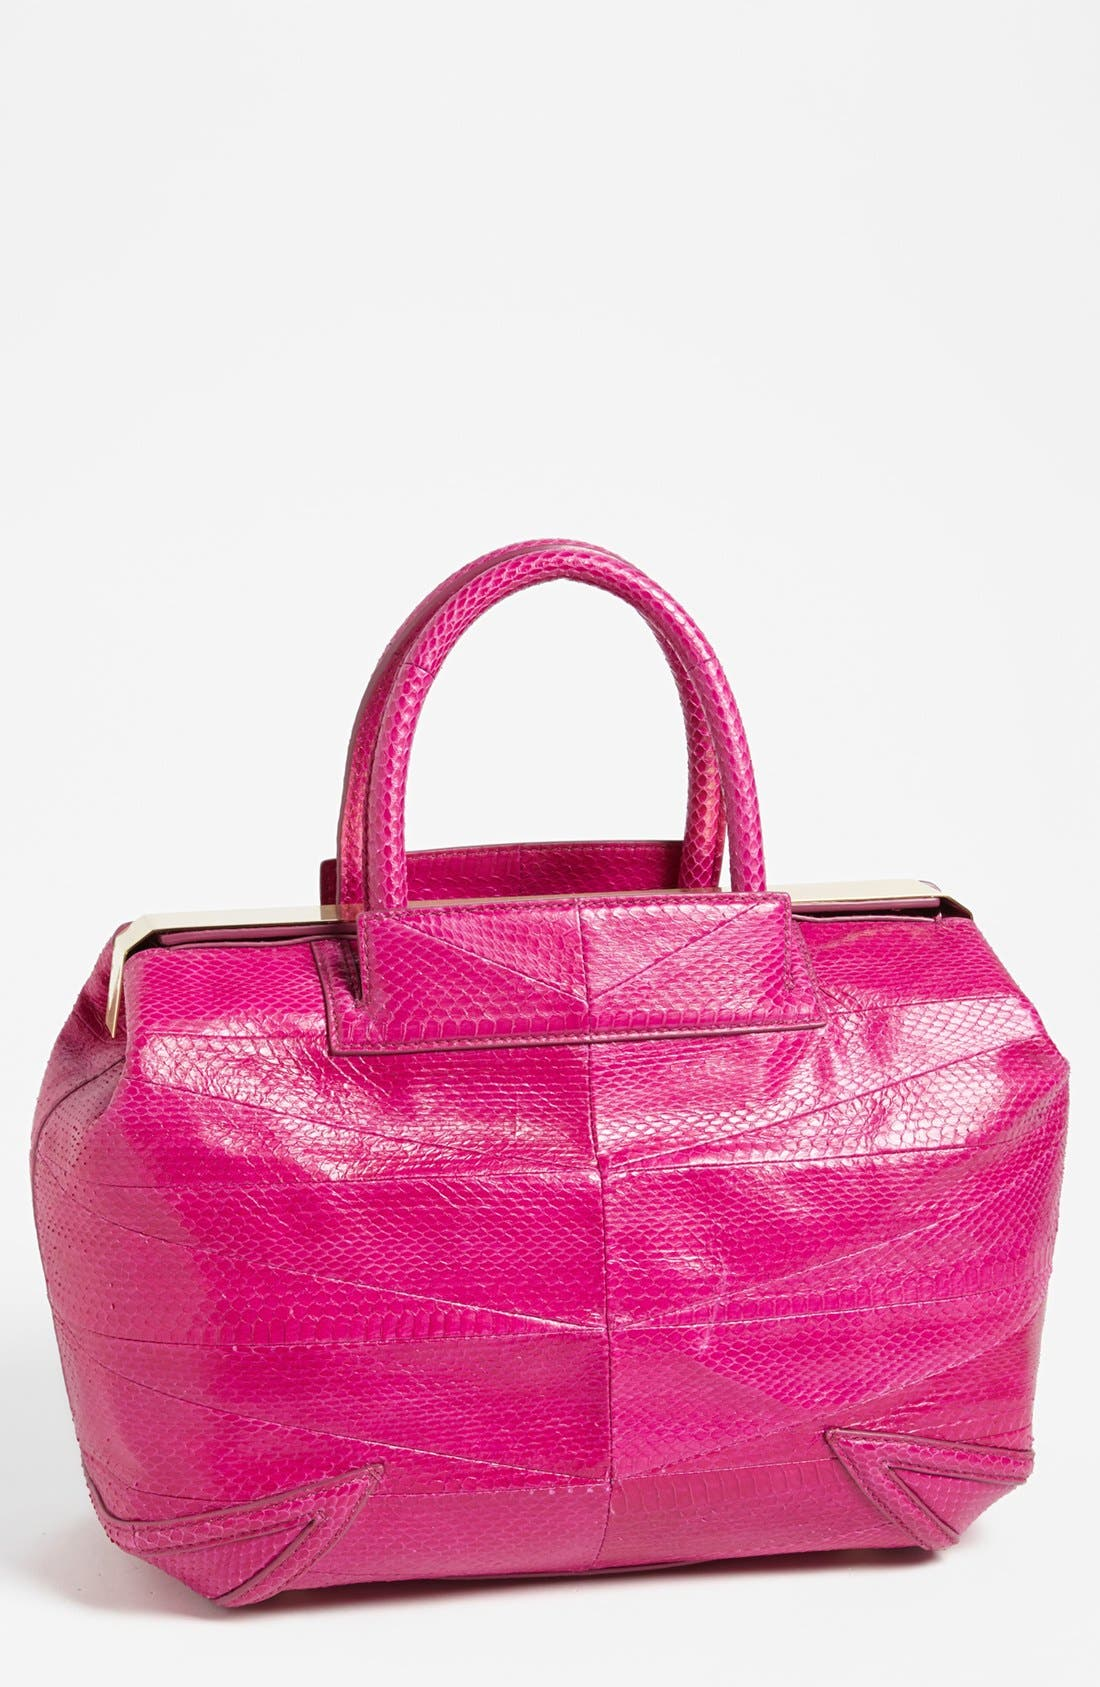 Main Image - B Brian Atwood 'Sophia' Leather Satchel